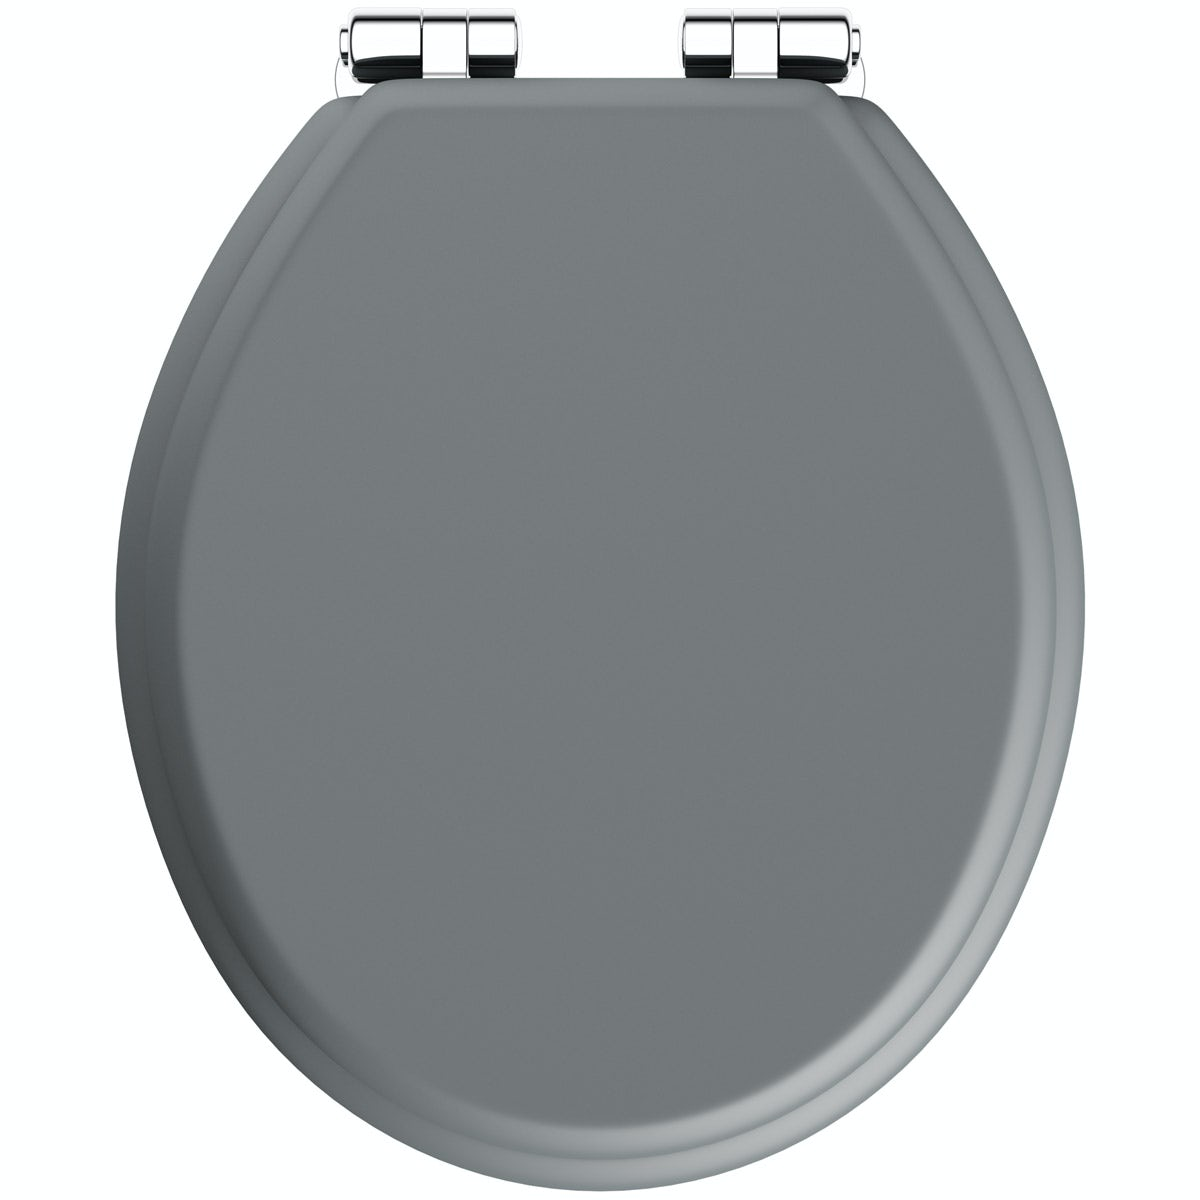 Awe Inspiring The Bath Co Traditional Dulwich Stone Grey Engineered Wood Toilet Seat With Top Fixing Soft Close Hinge Onthecornerstone Fun Painted Chair Ideas Images Onthecornerstoneorg